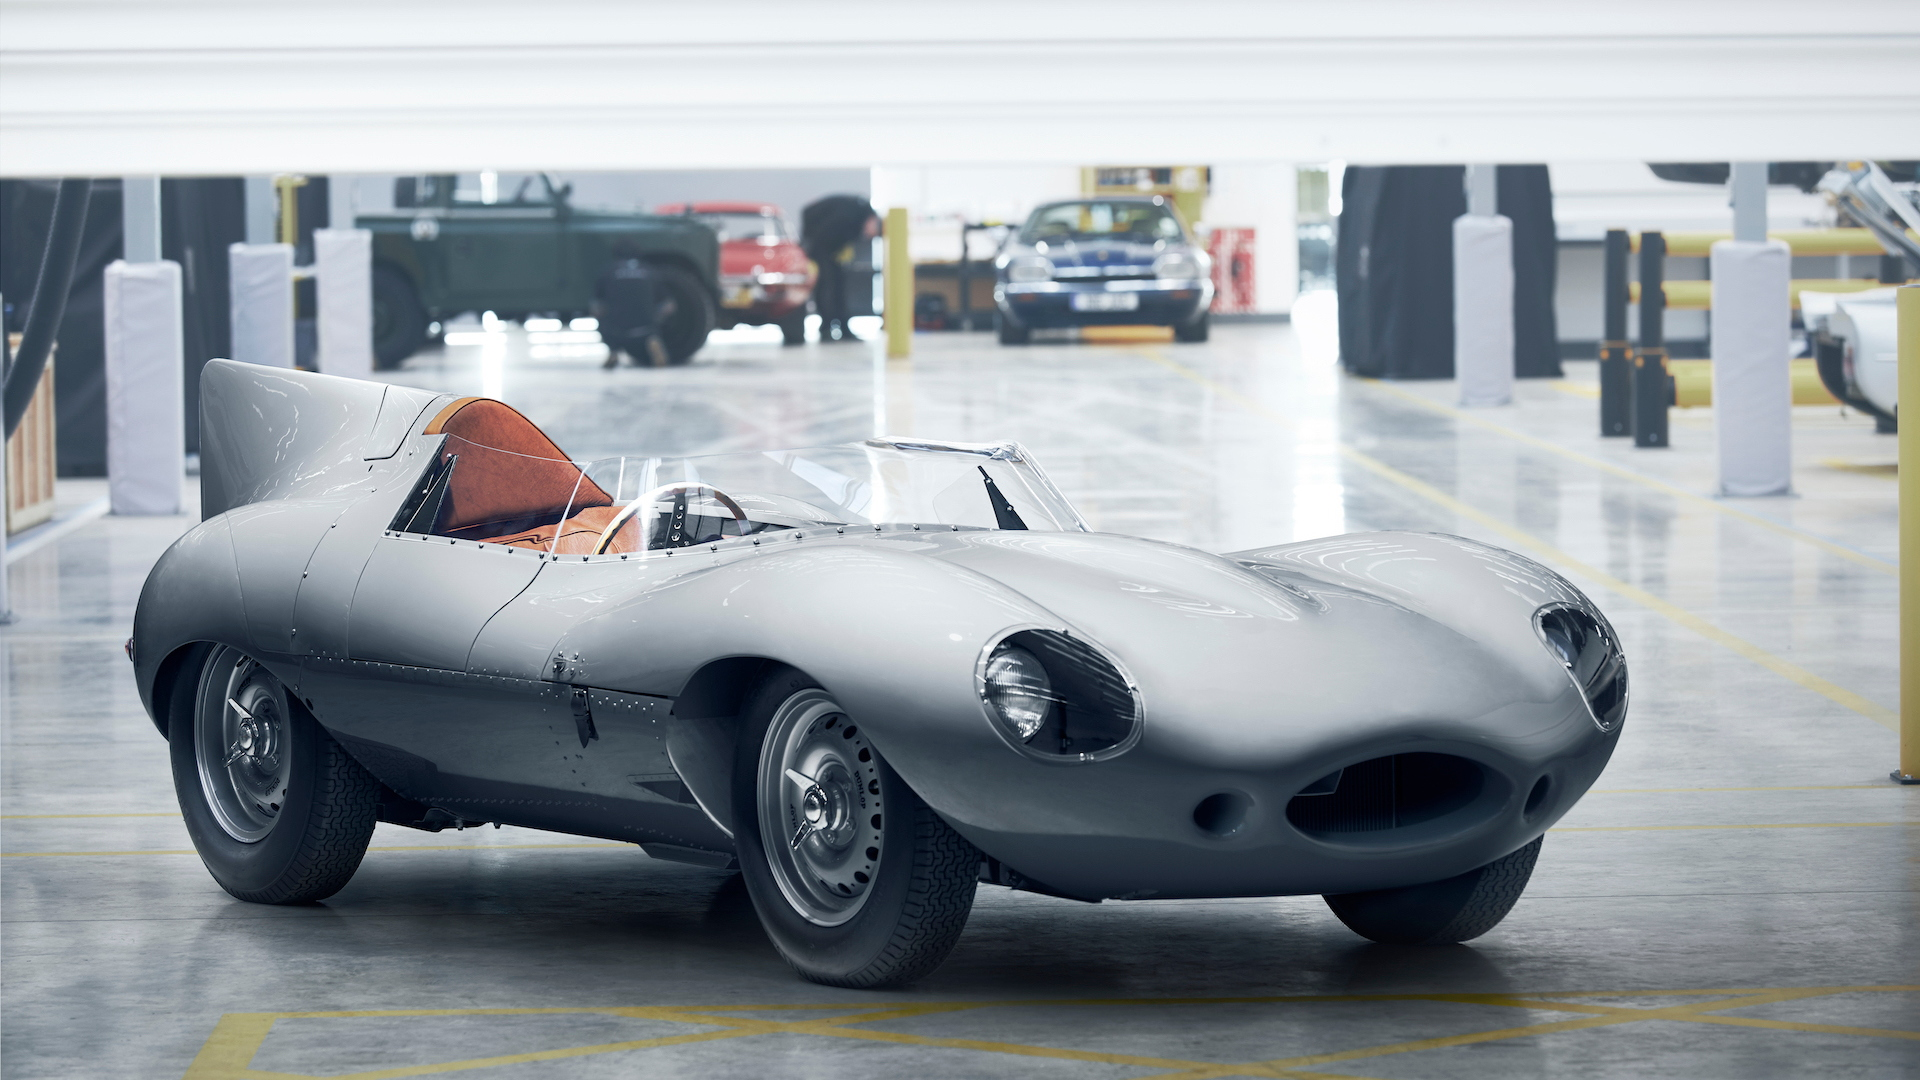 Jaguar restarting production of D-Type after 62 years